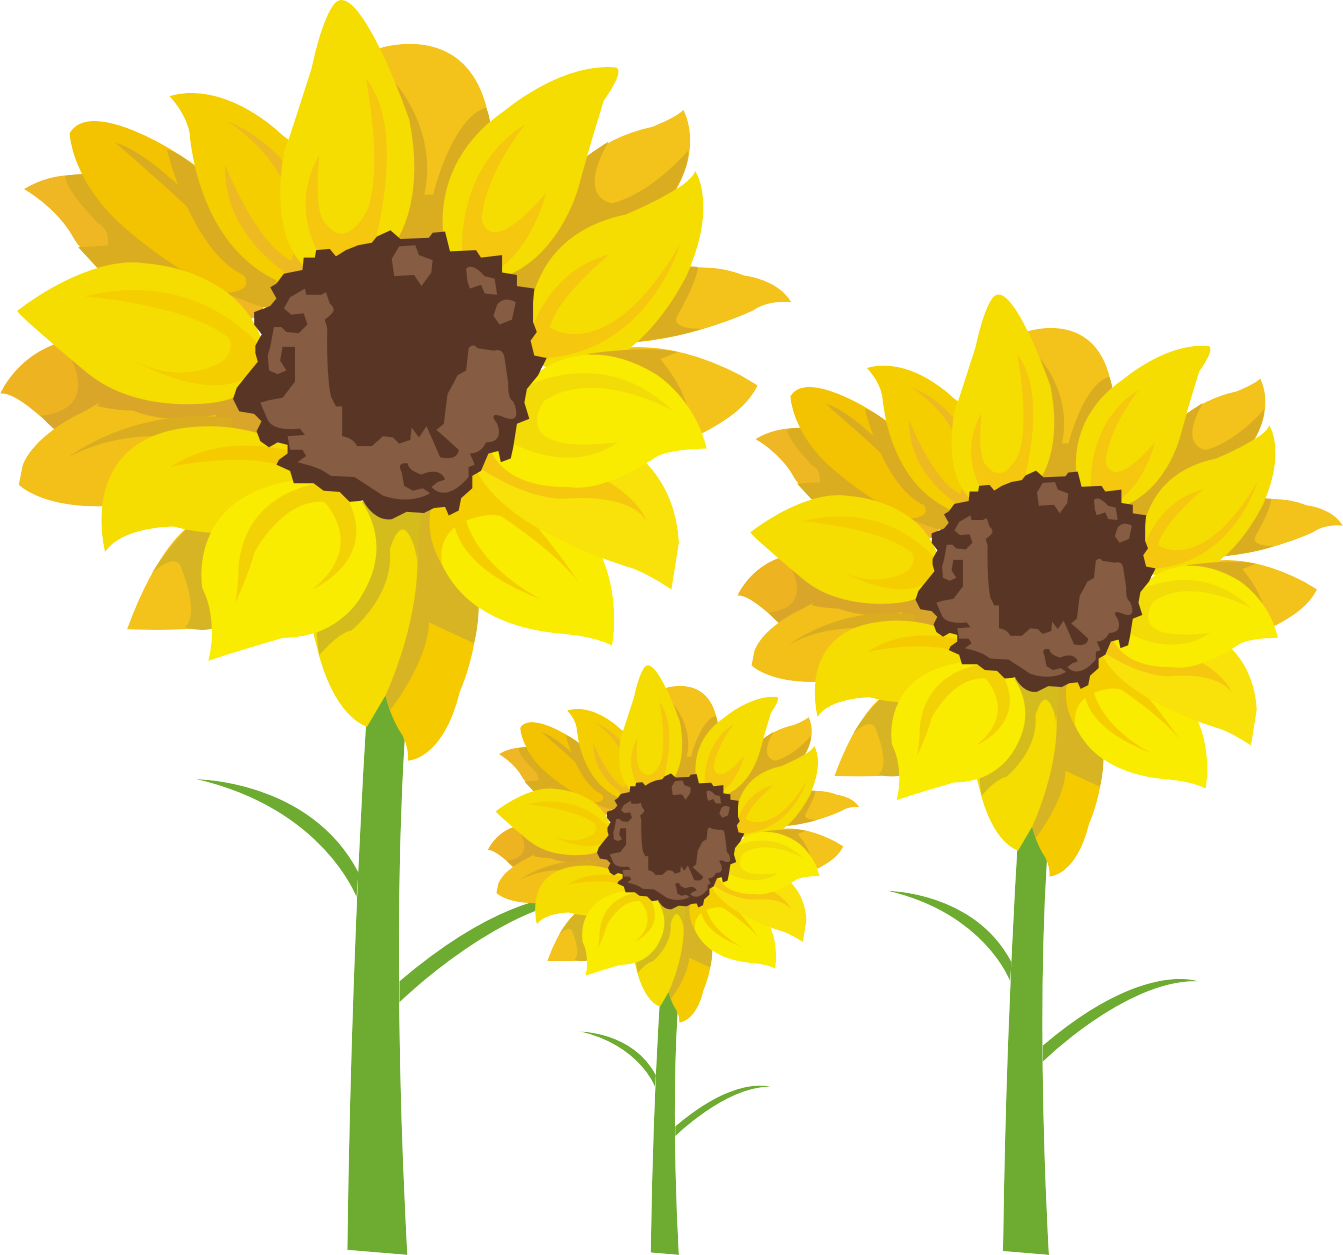 Sun flower seed clipart svg library download Common sunflower Sunflower seed Clip art - sunflower 1343*1255 ... svg library download